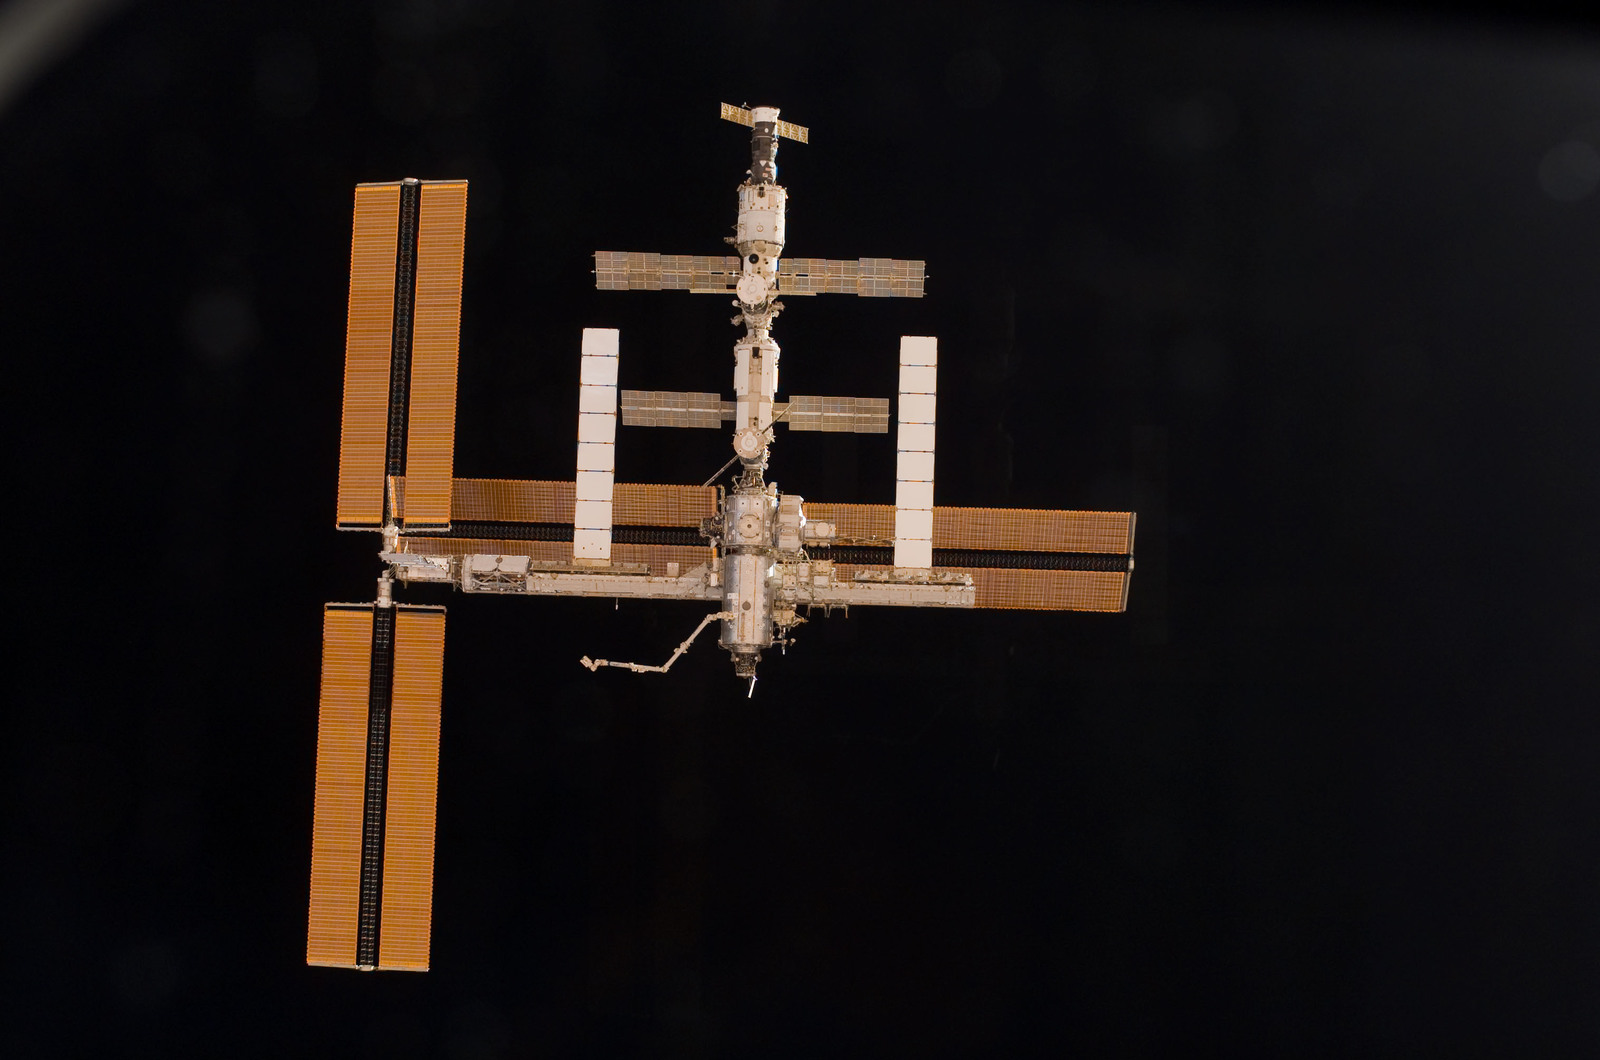 S115E06727 - STS-115 - Overall exterior view of the ISS during undocking and Flyaround Operations for STS-115 Space Shuttle Atlantis